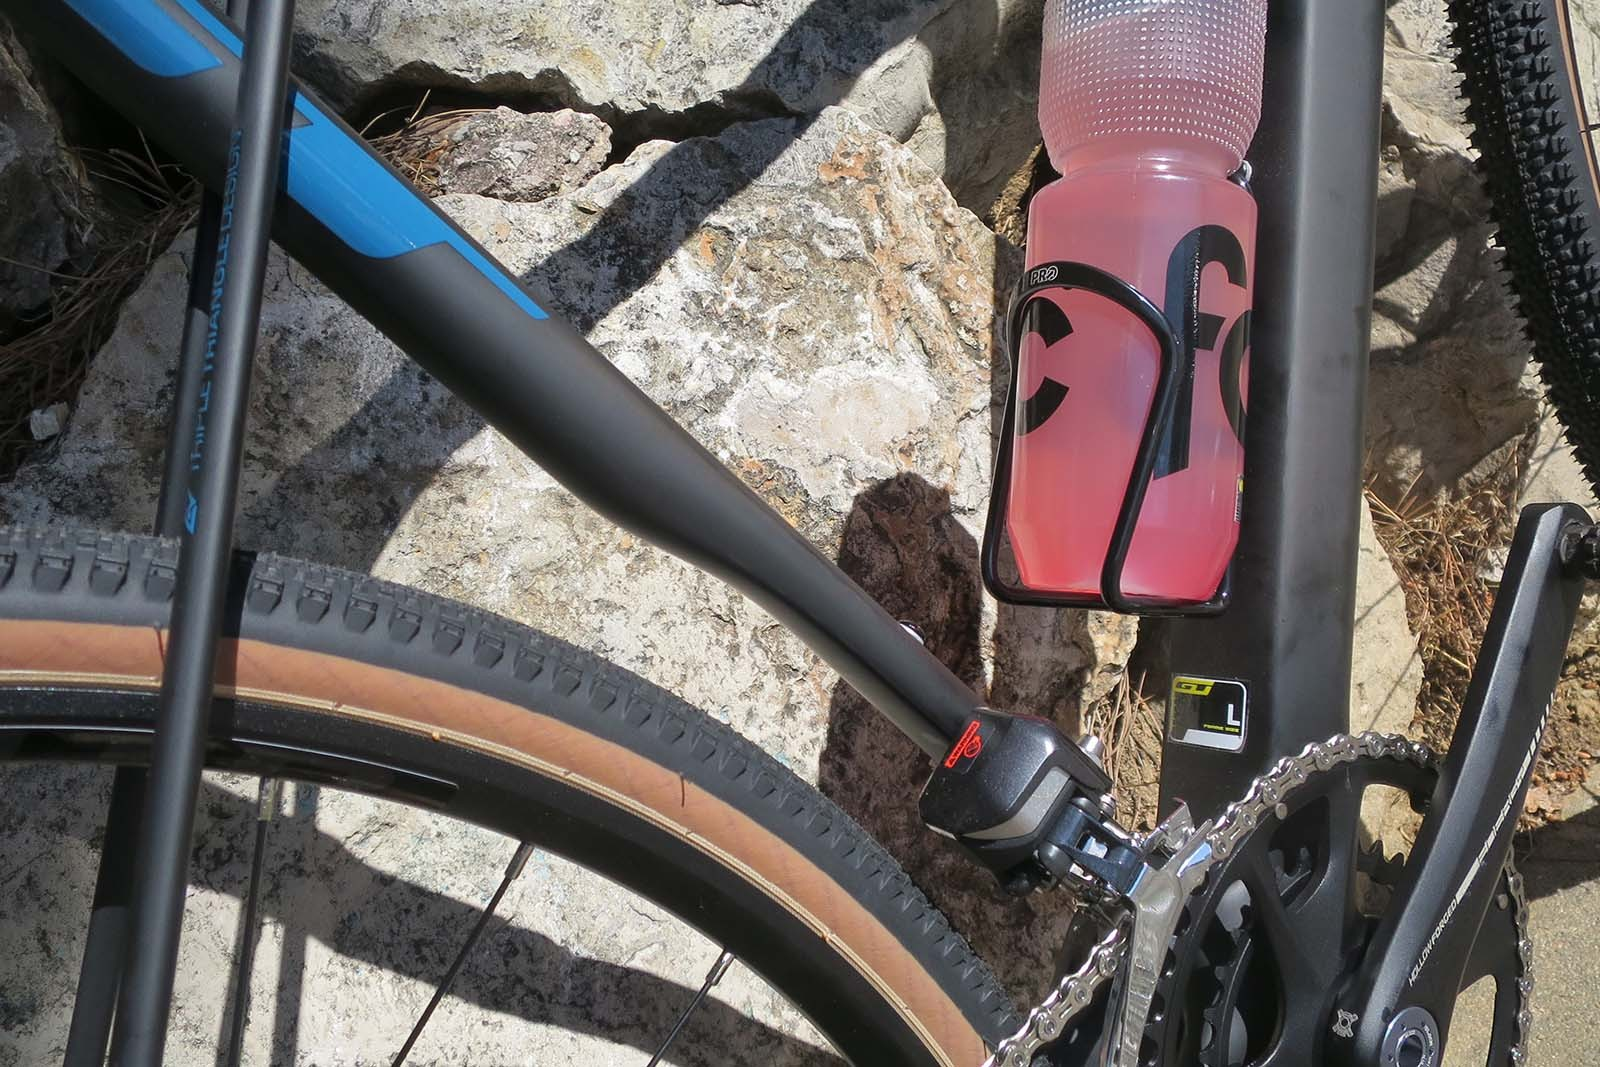 The bottom third of the seat tube radically flattens so the un-restricted (by the seatstays) seat tube can flex significantly